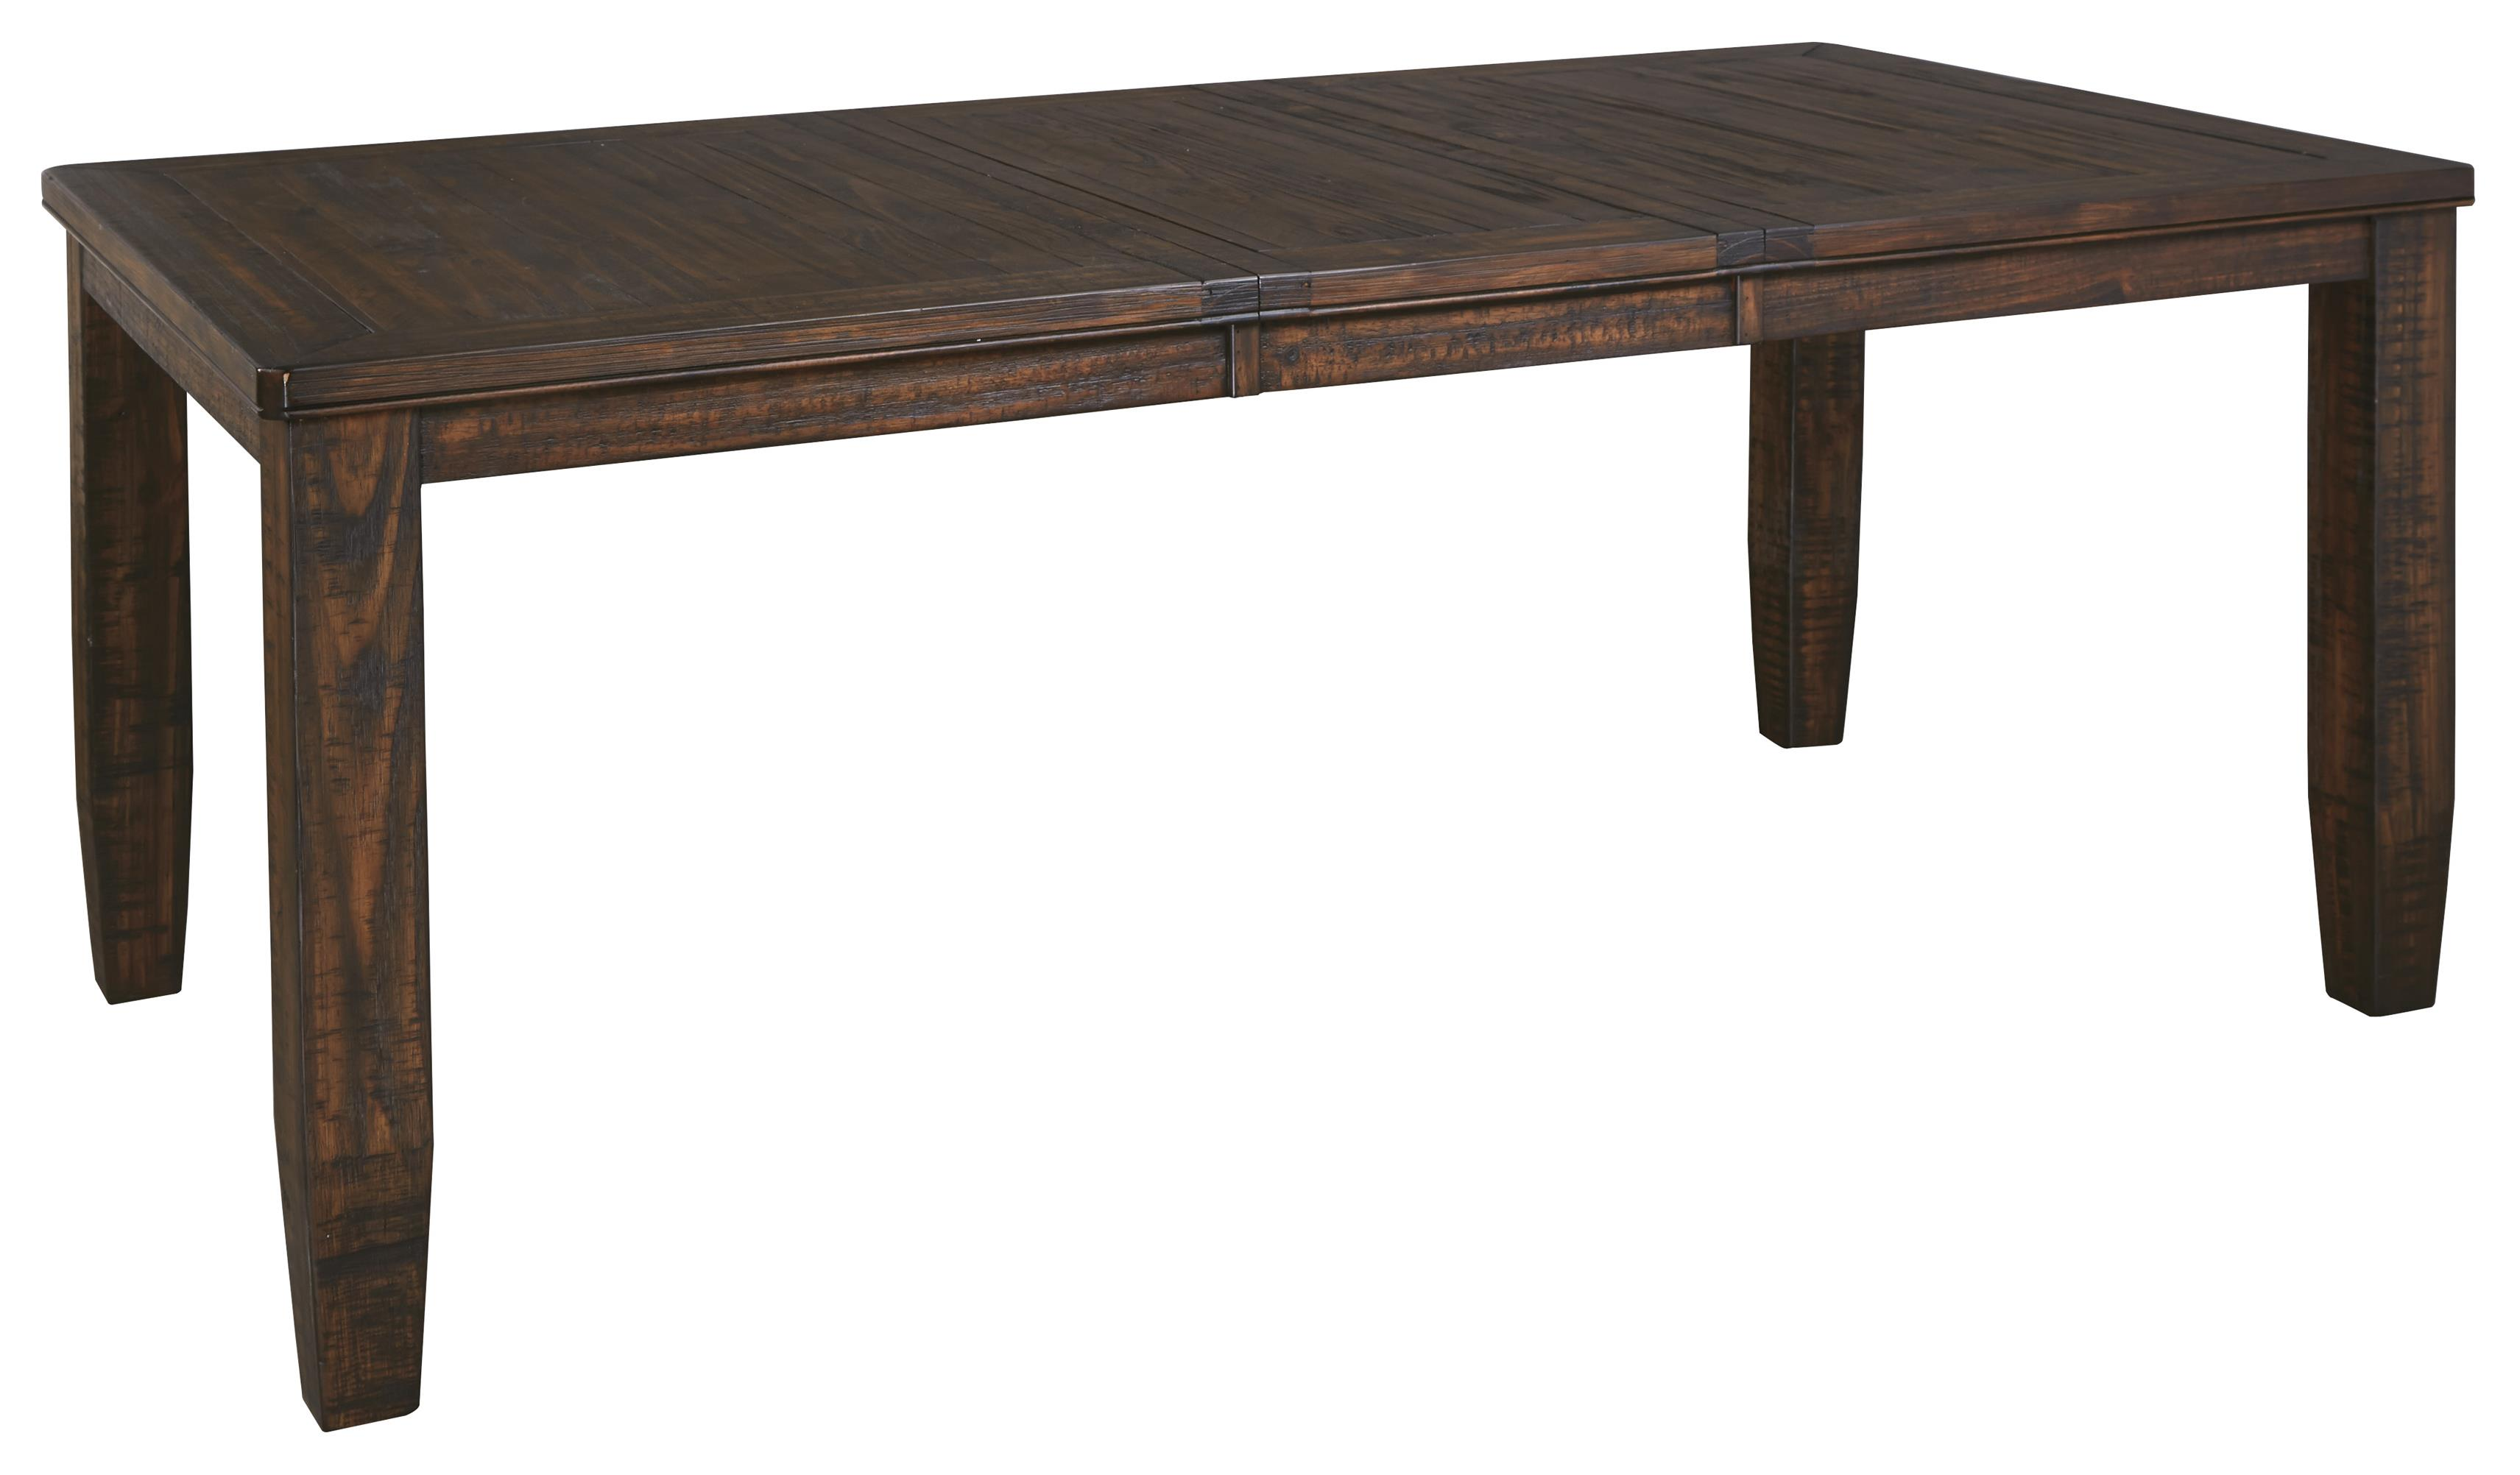 Signature design by ashley trudell d658 35 solid wood pine Table extenders dining room